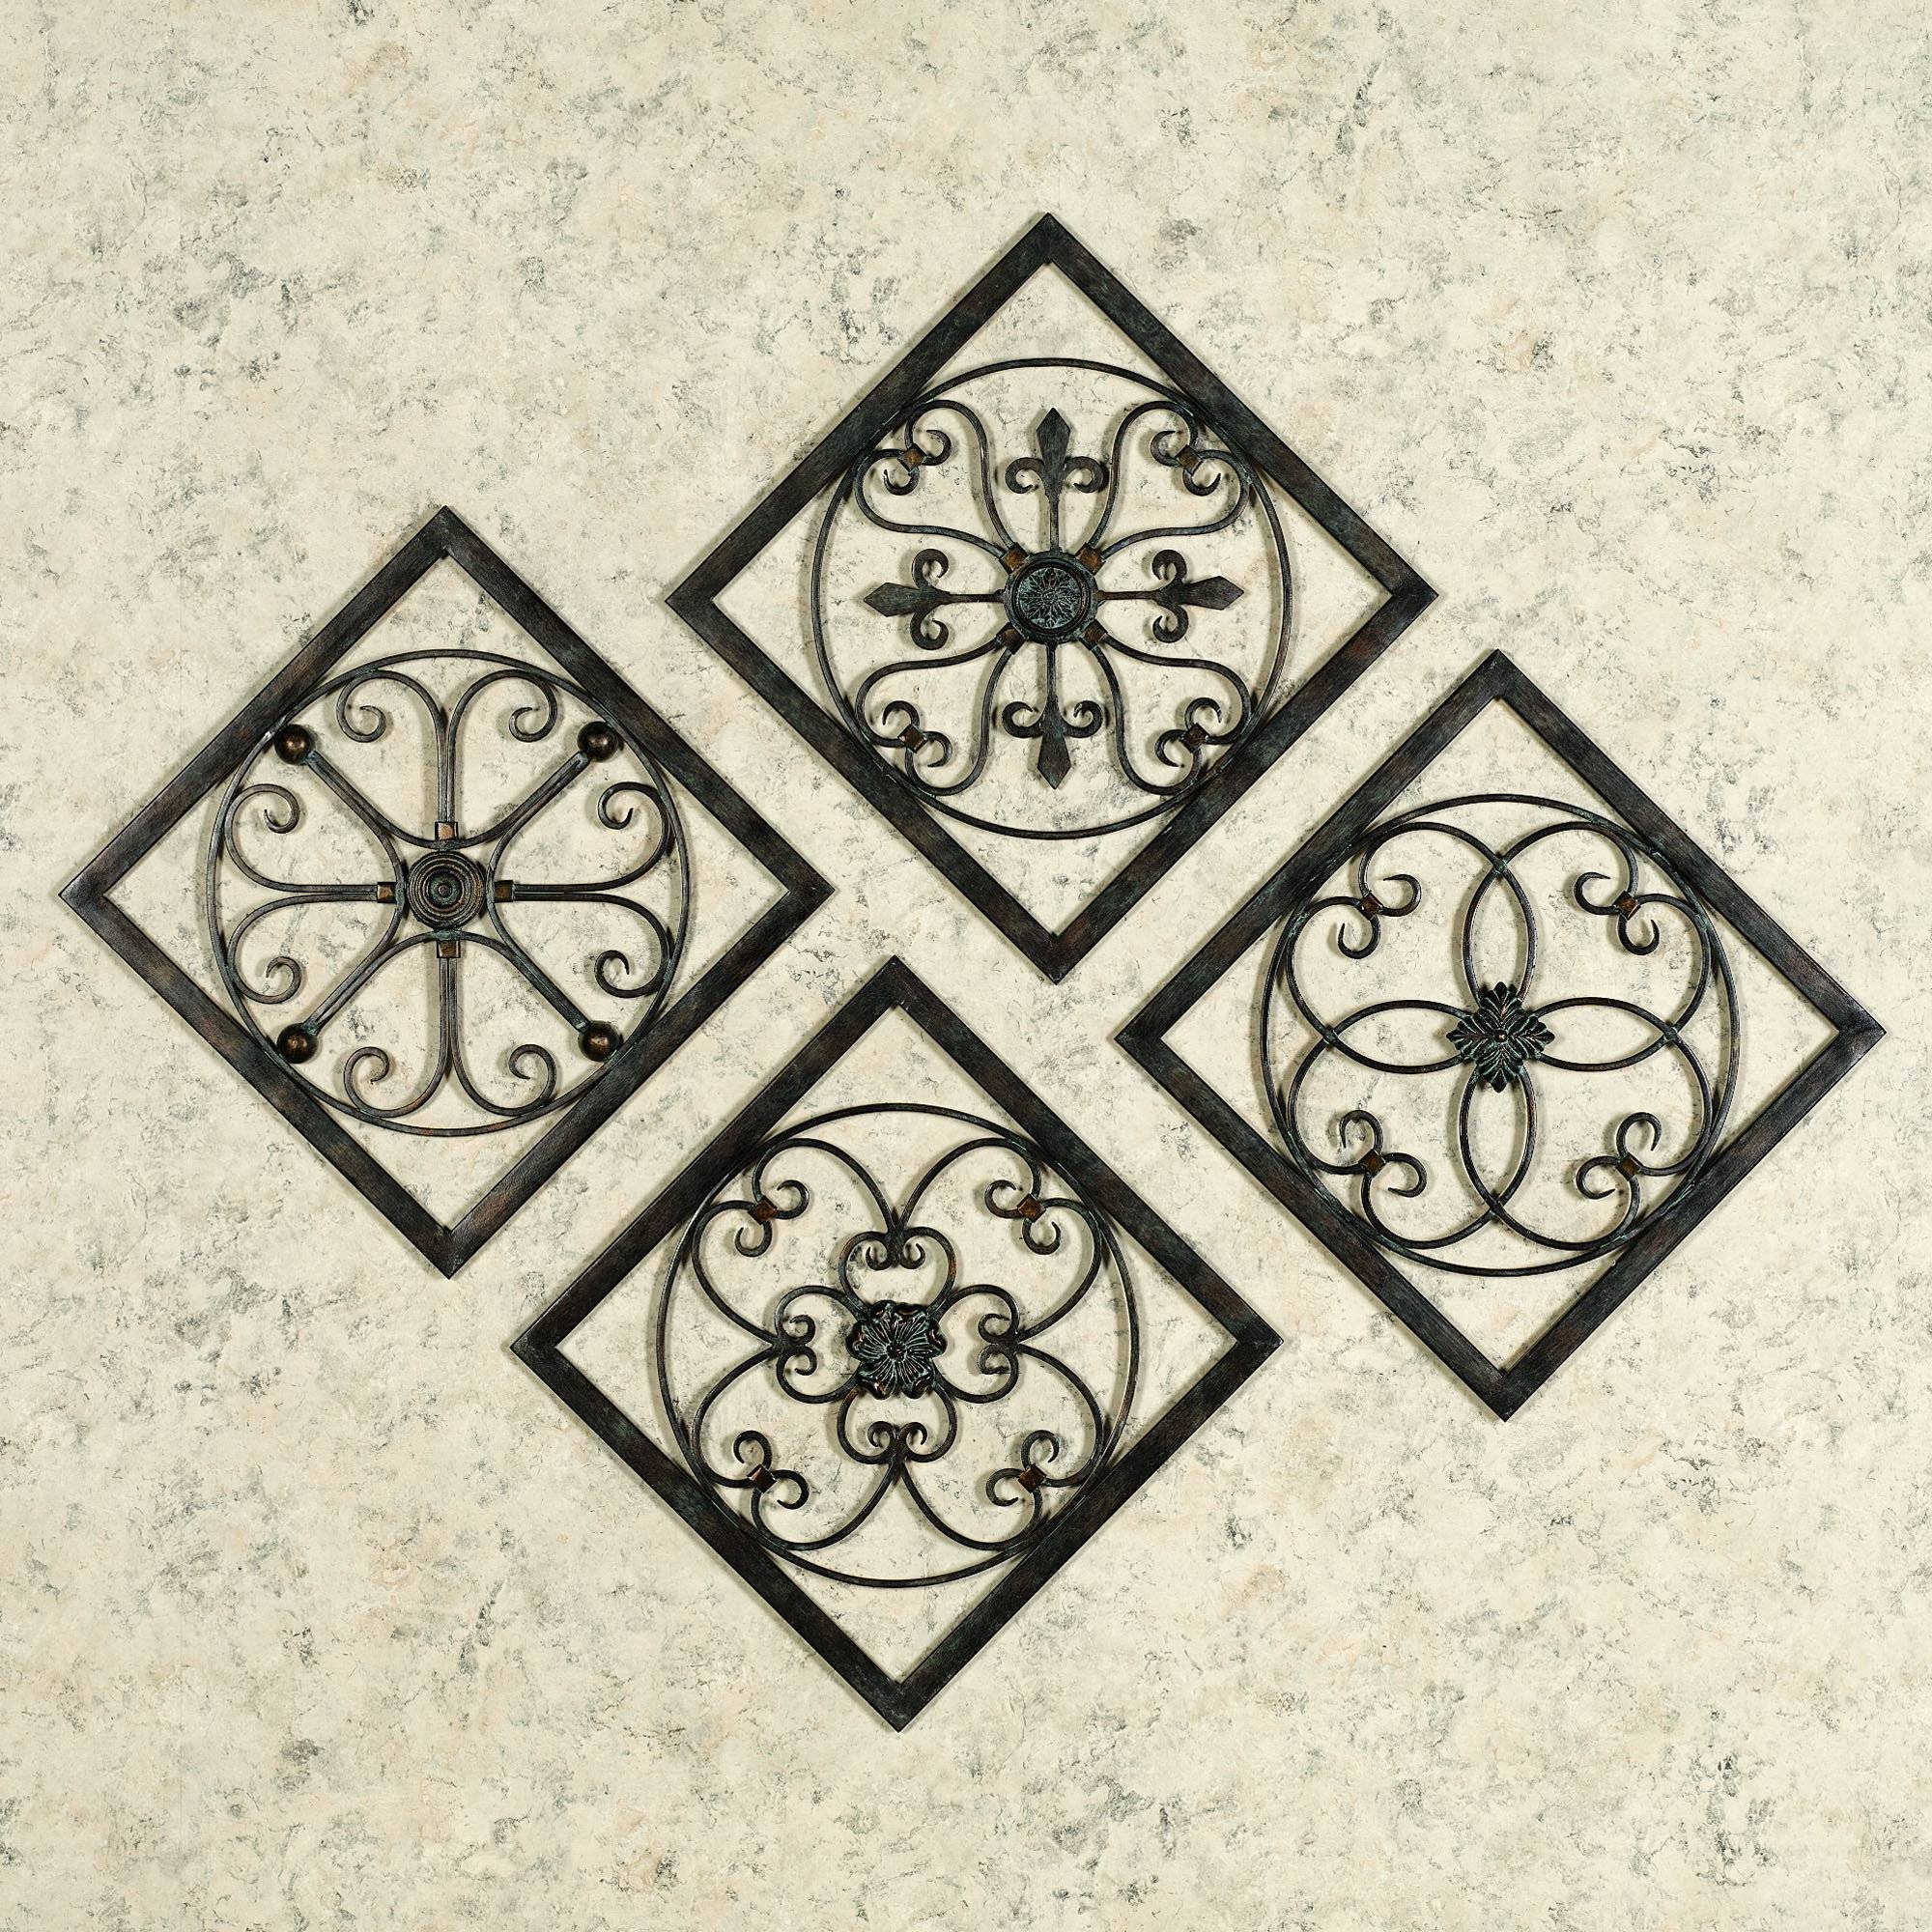 Trendy Square Metal Wall Art Multi Panel Metal Wall Design Ideas Intended For Most Popular Square Metal Wall Art (View 11 of 20)